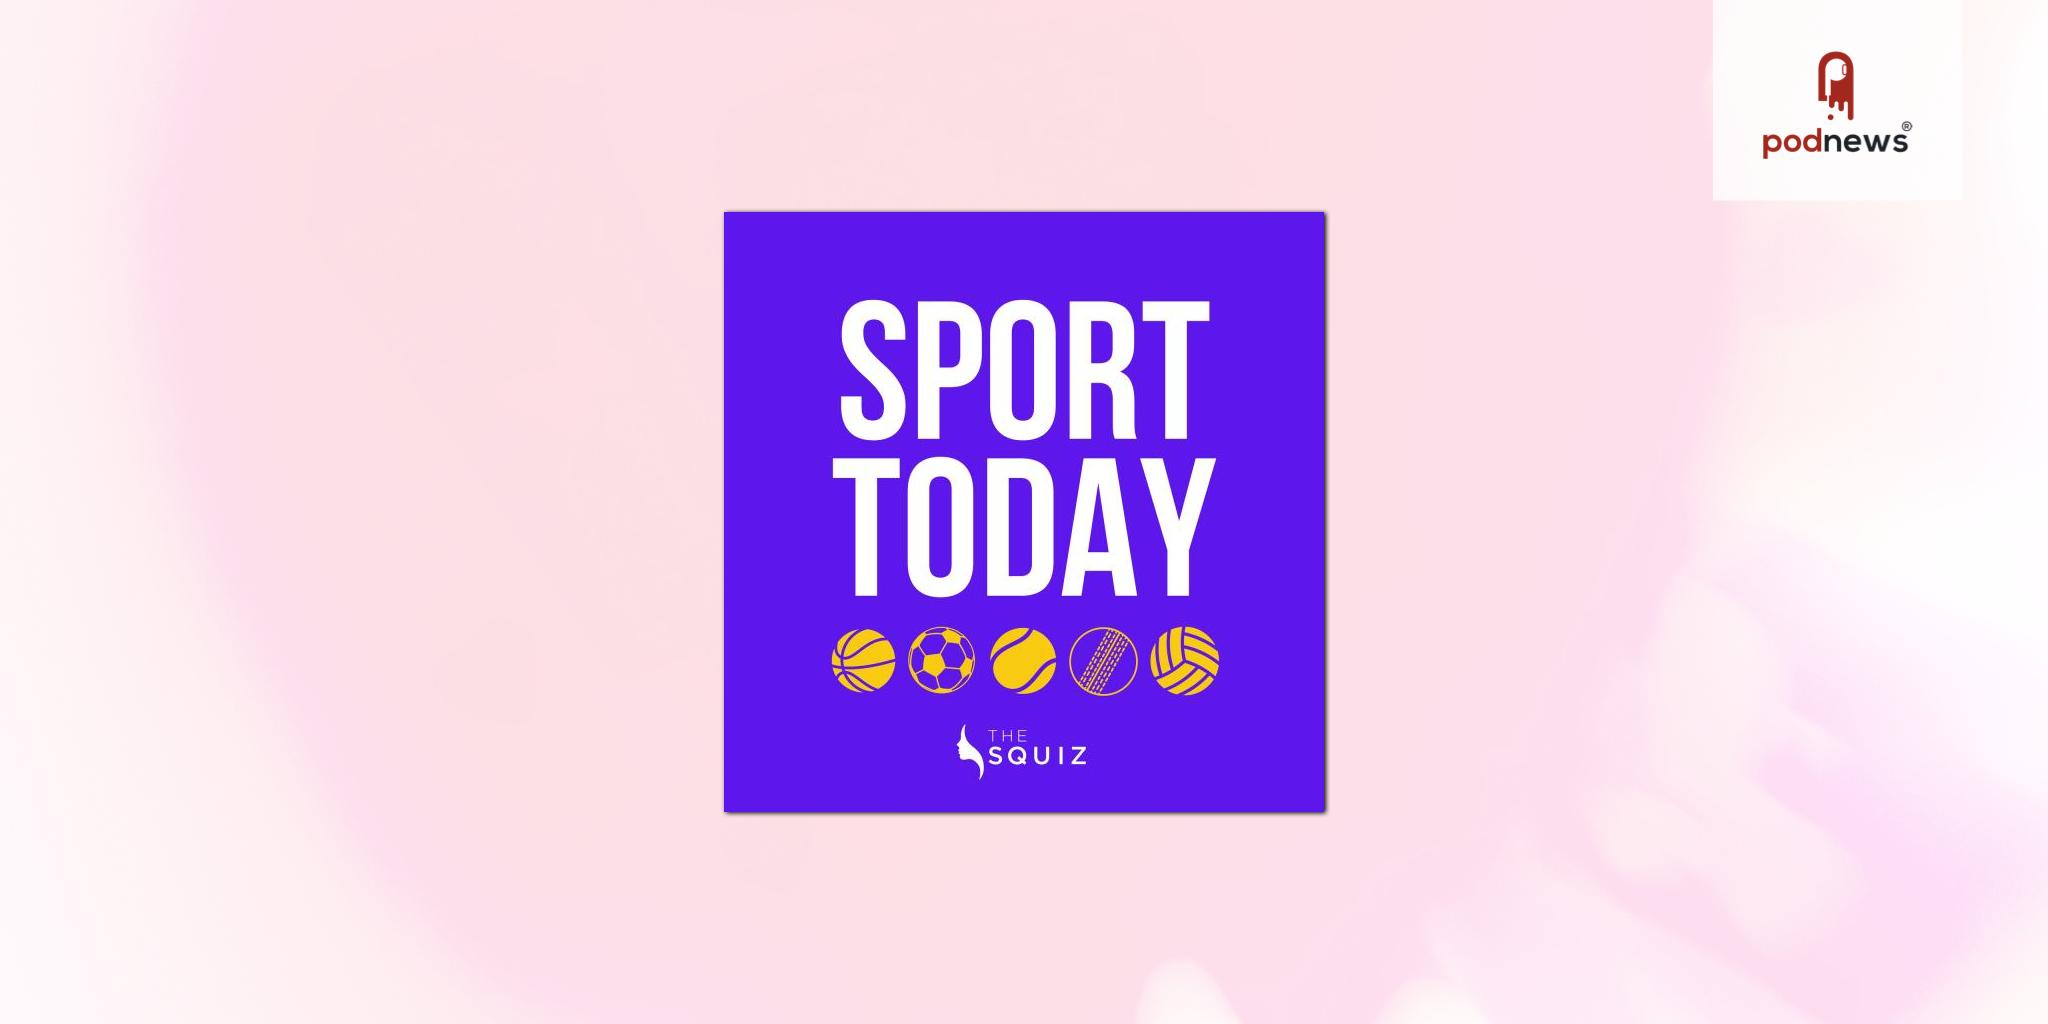 Sport Today is back in the game and ready to play as part of the Acast Creator Network